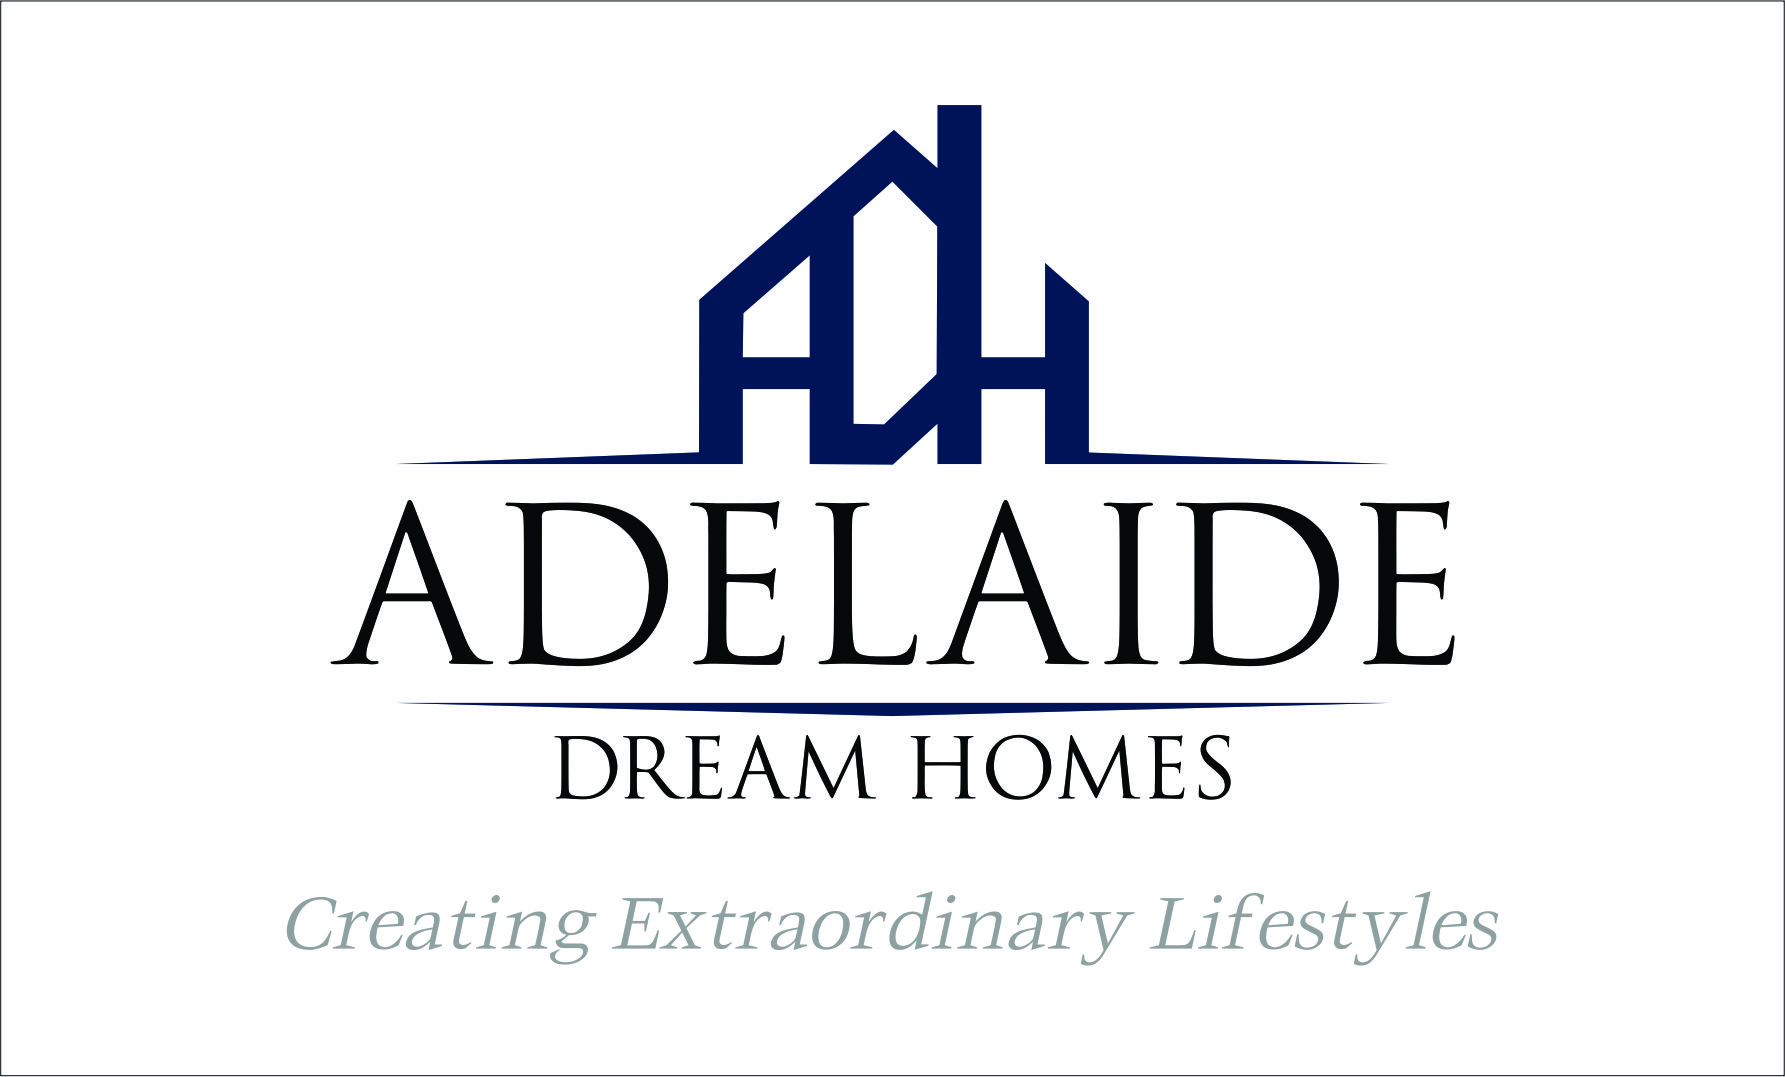 Adelaide Dream Homes